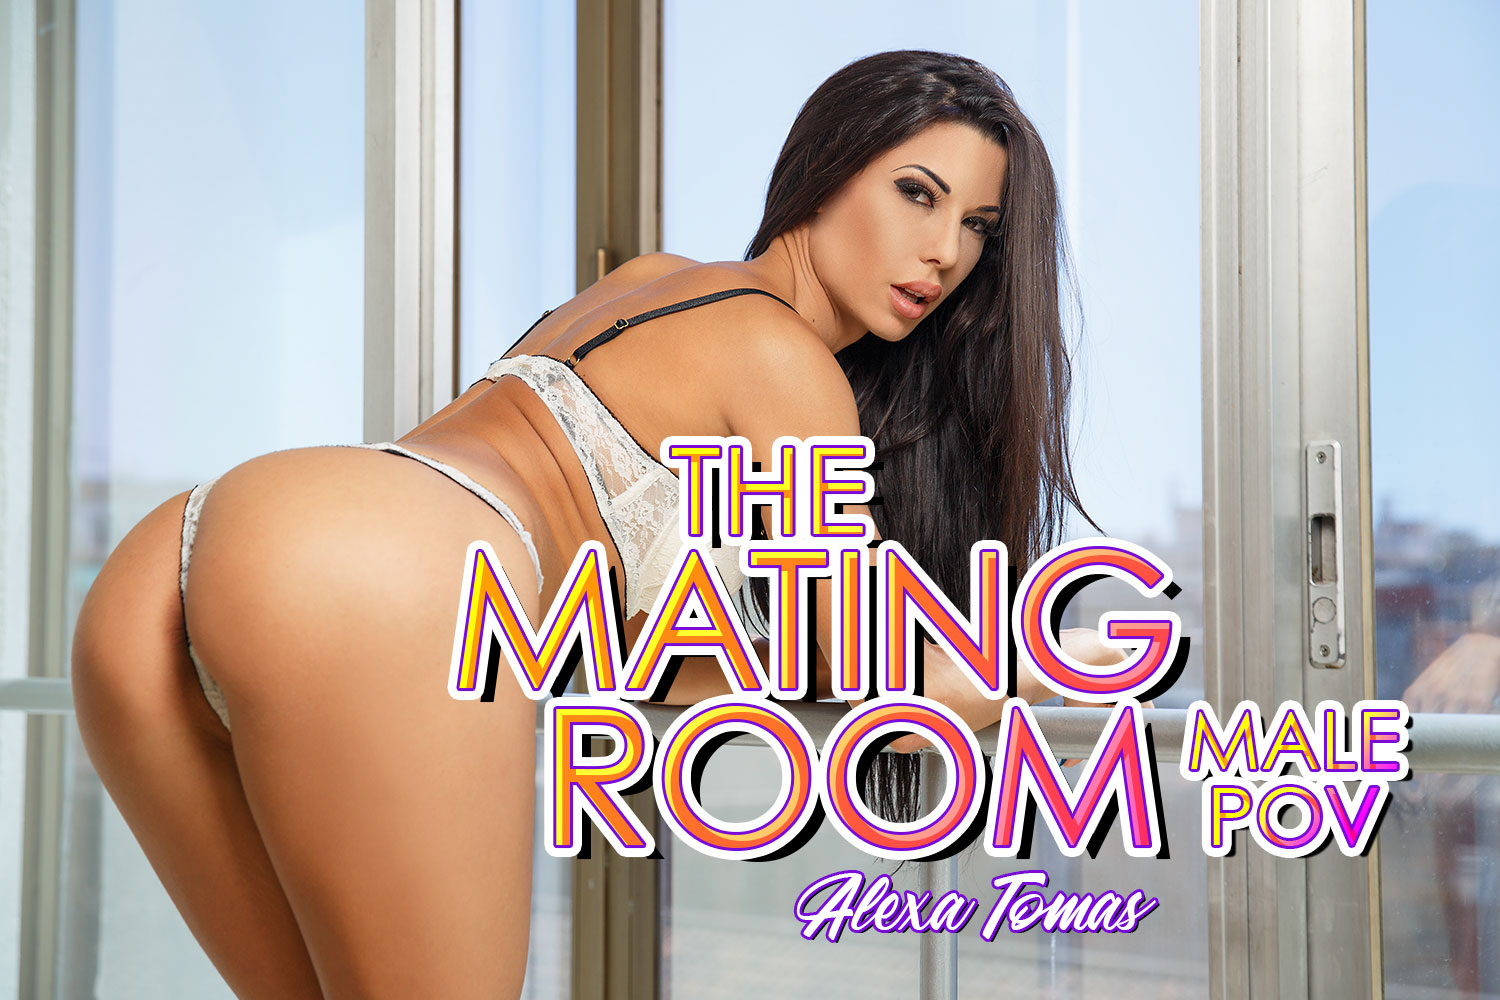 The Mating Room - Male POV VR Porn Video